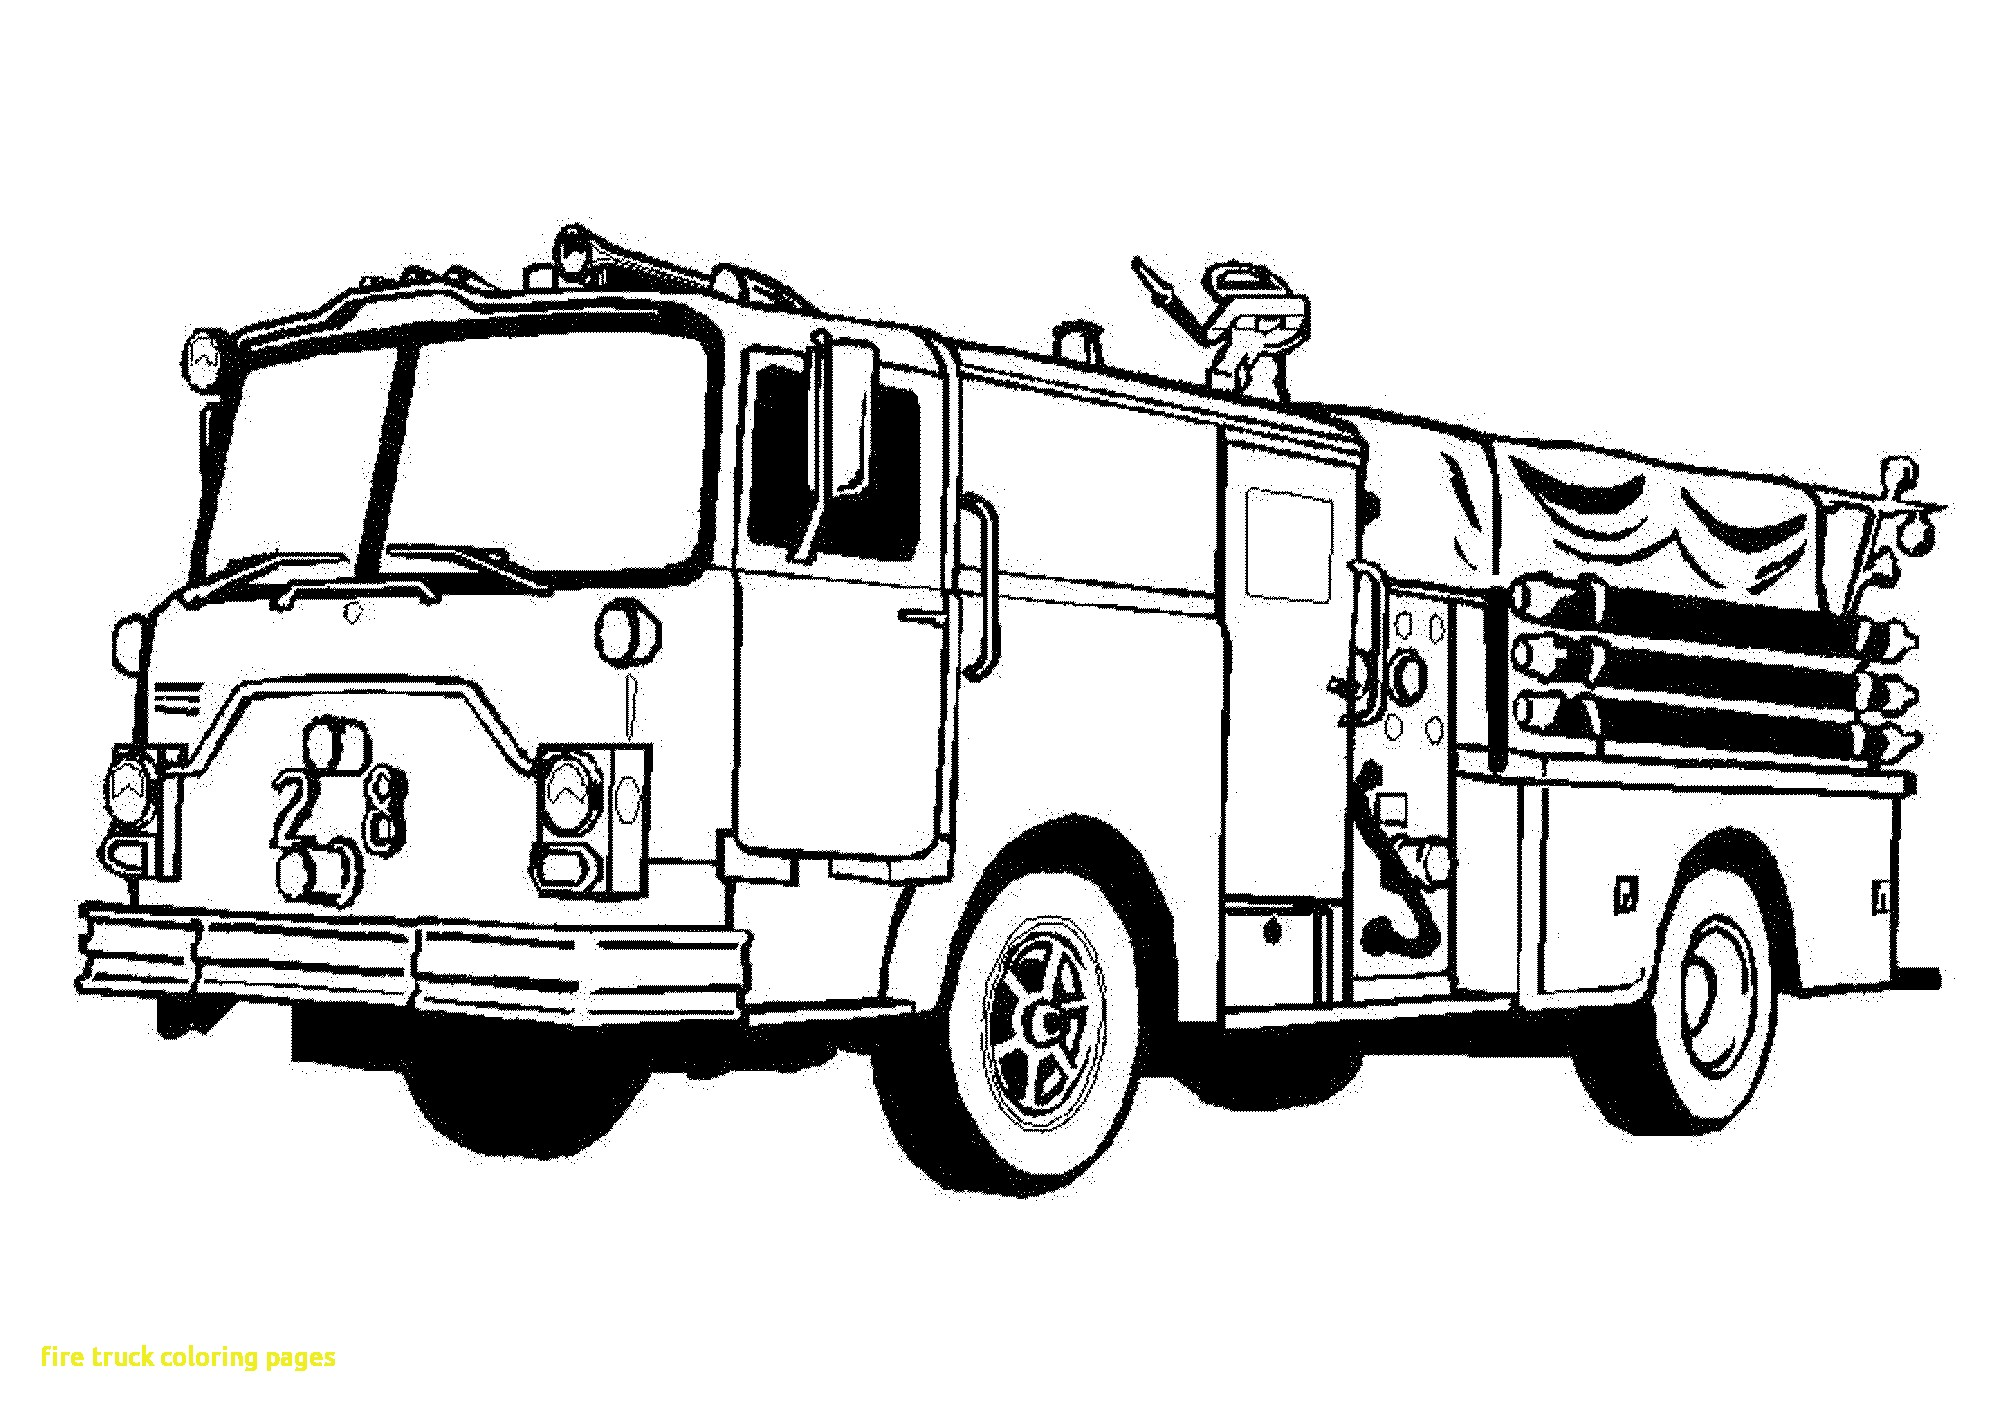 how to draw fire engine fire truck drawing pictures at getdrawings free download draw how to fire engine